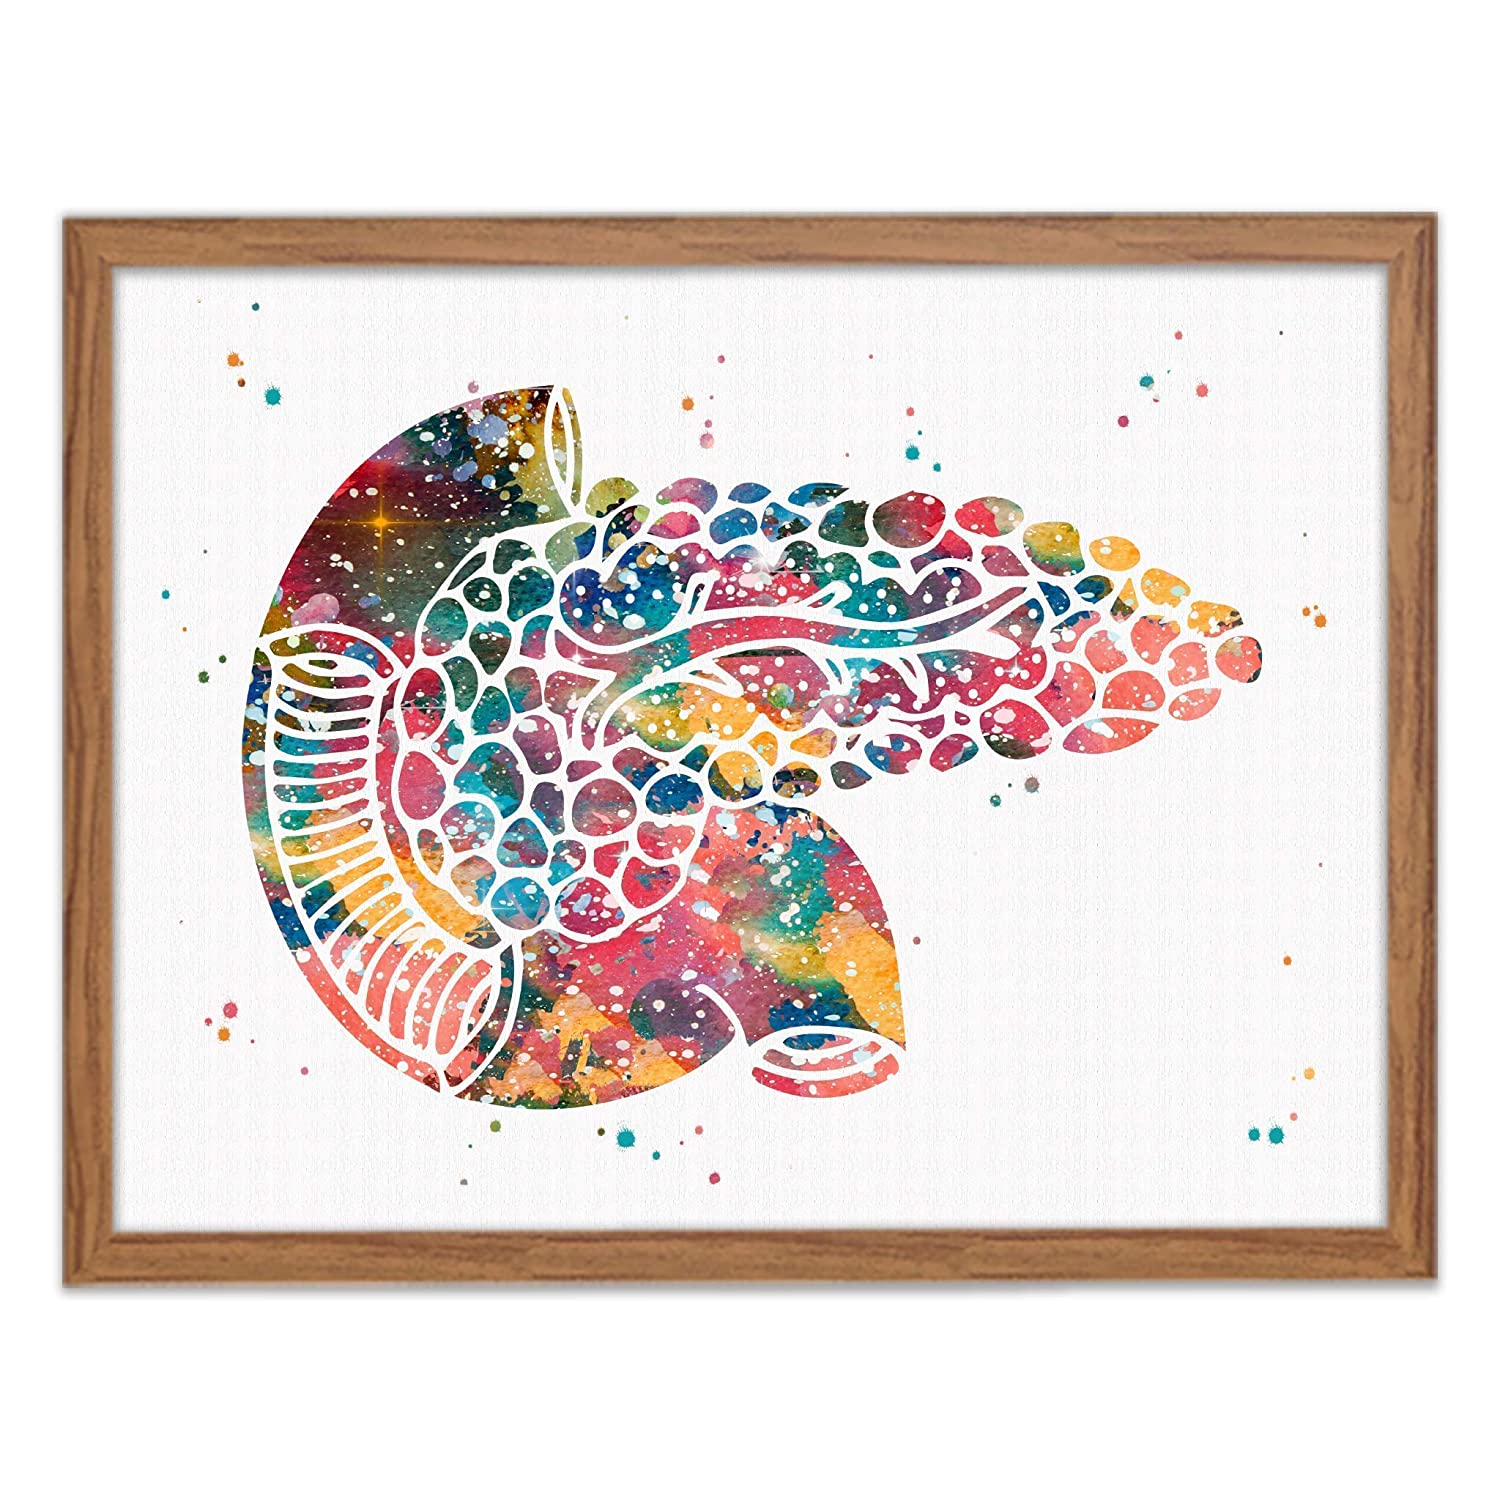 Pancreas Watercolor Print Human Internal Organs Wall Art Digestive System Wall Decor Human Anatomy Office Decor Endocrine Art Works Great Gift for Doctors